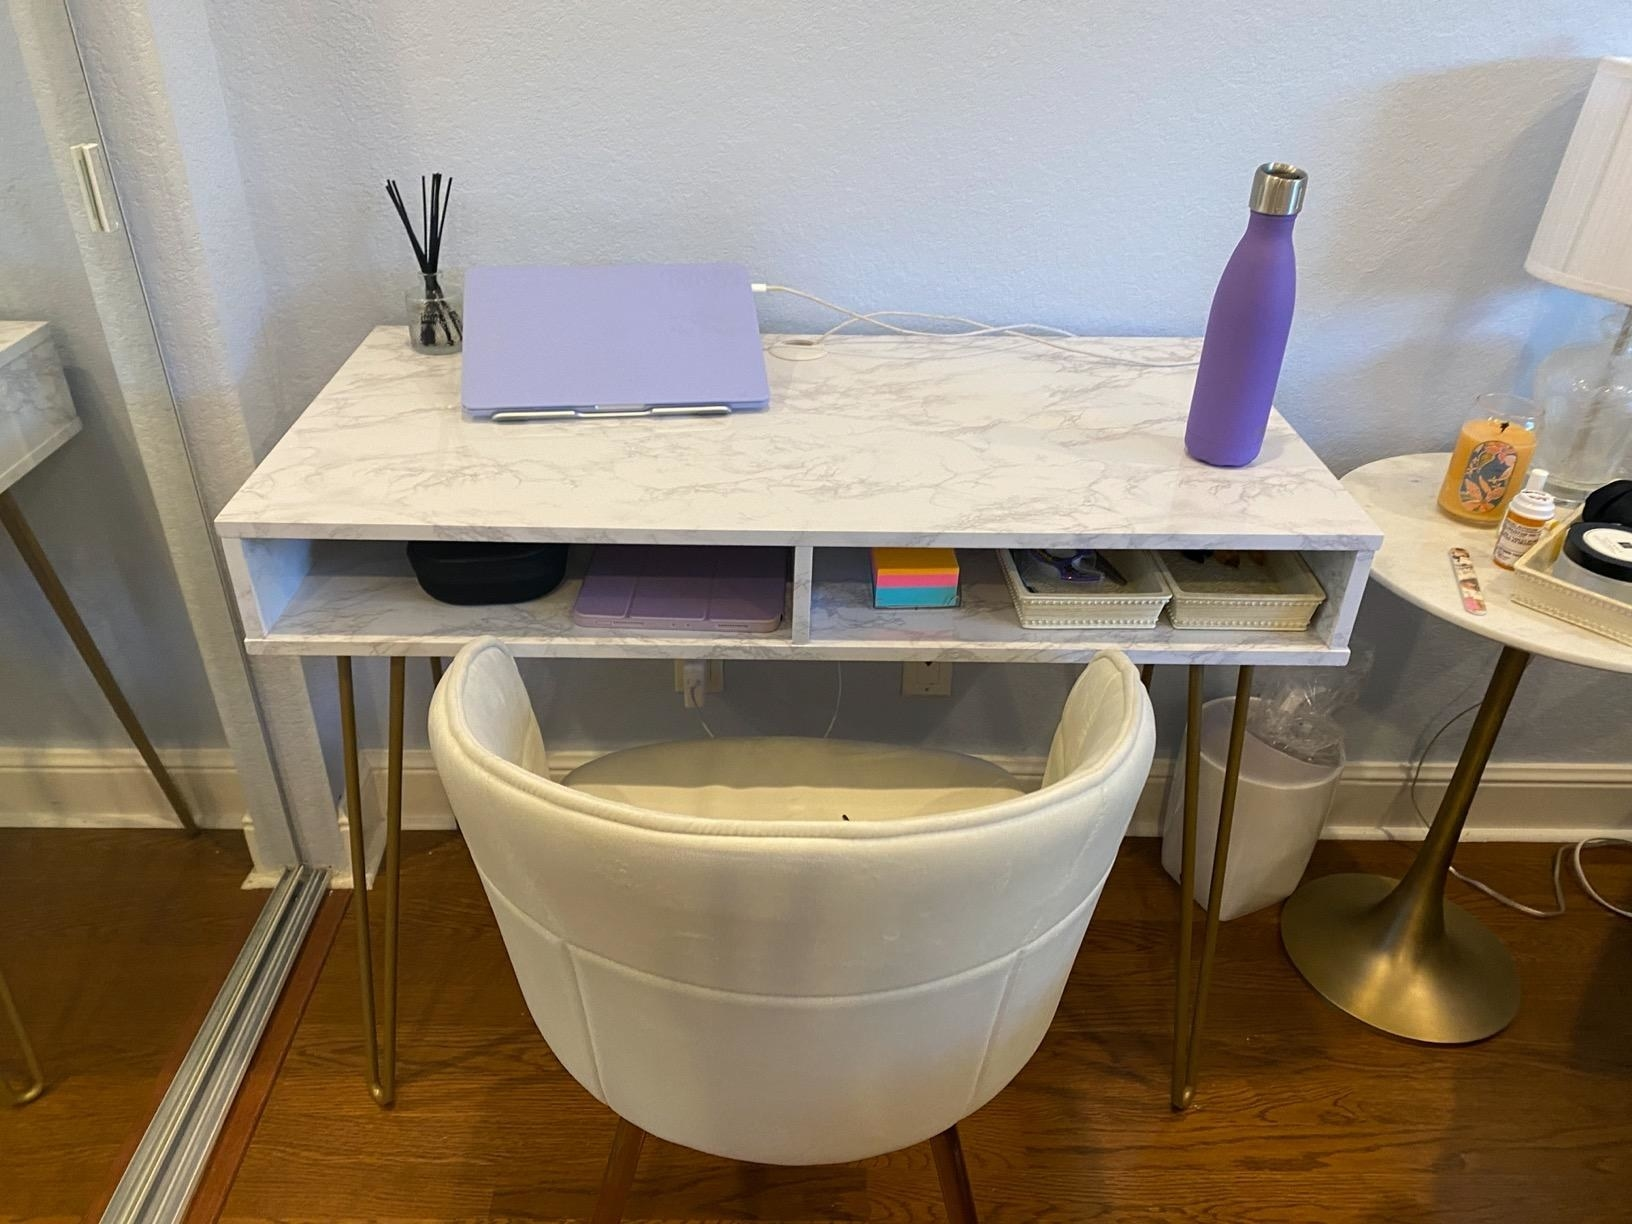 A reviewer showing the marble desk with two cubbies and metal legs